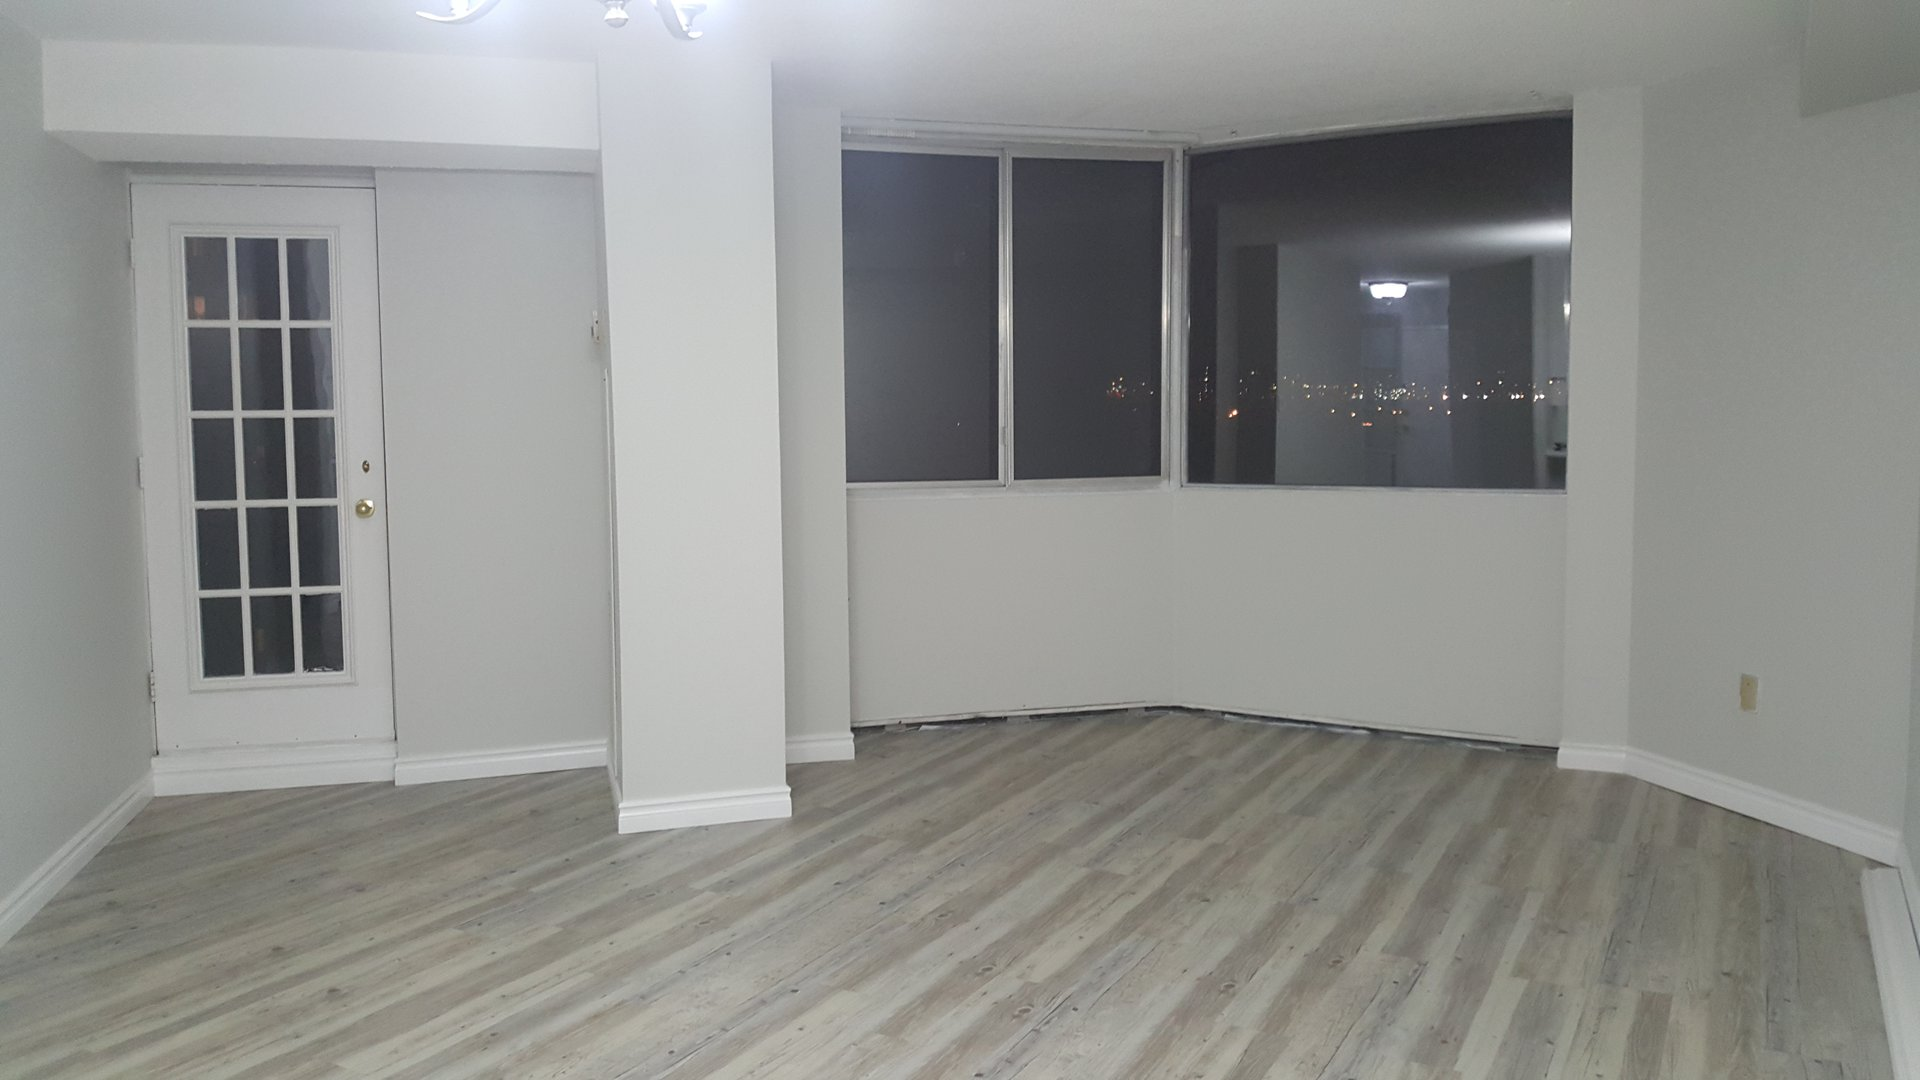 Condo for rent at 236 Albion Road, Etobicoke, ON. This is the empty room with hardwood floor.